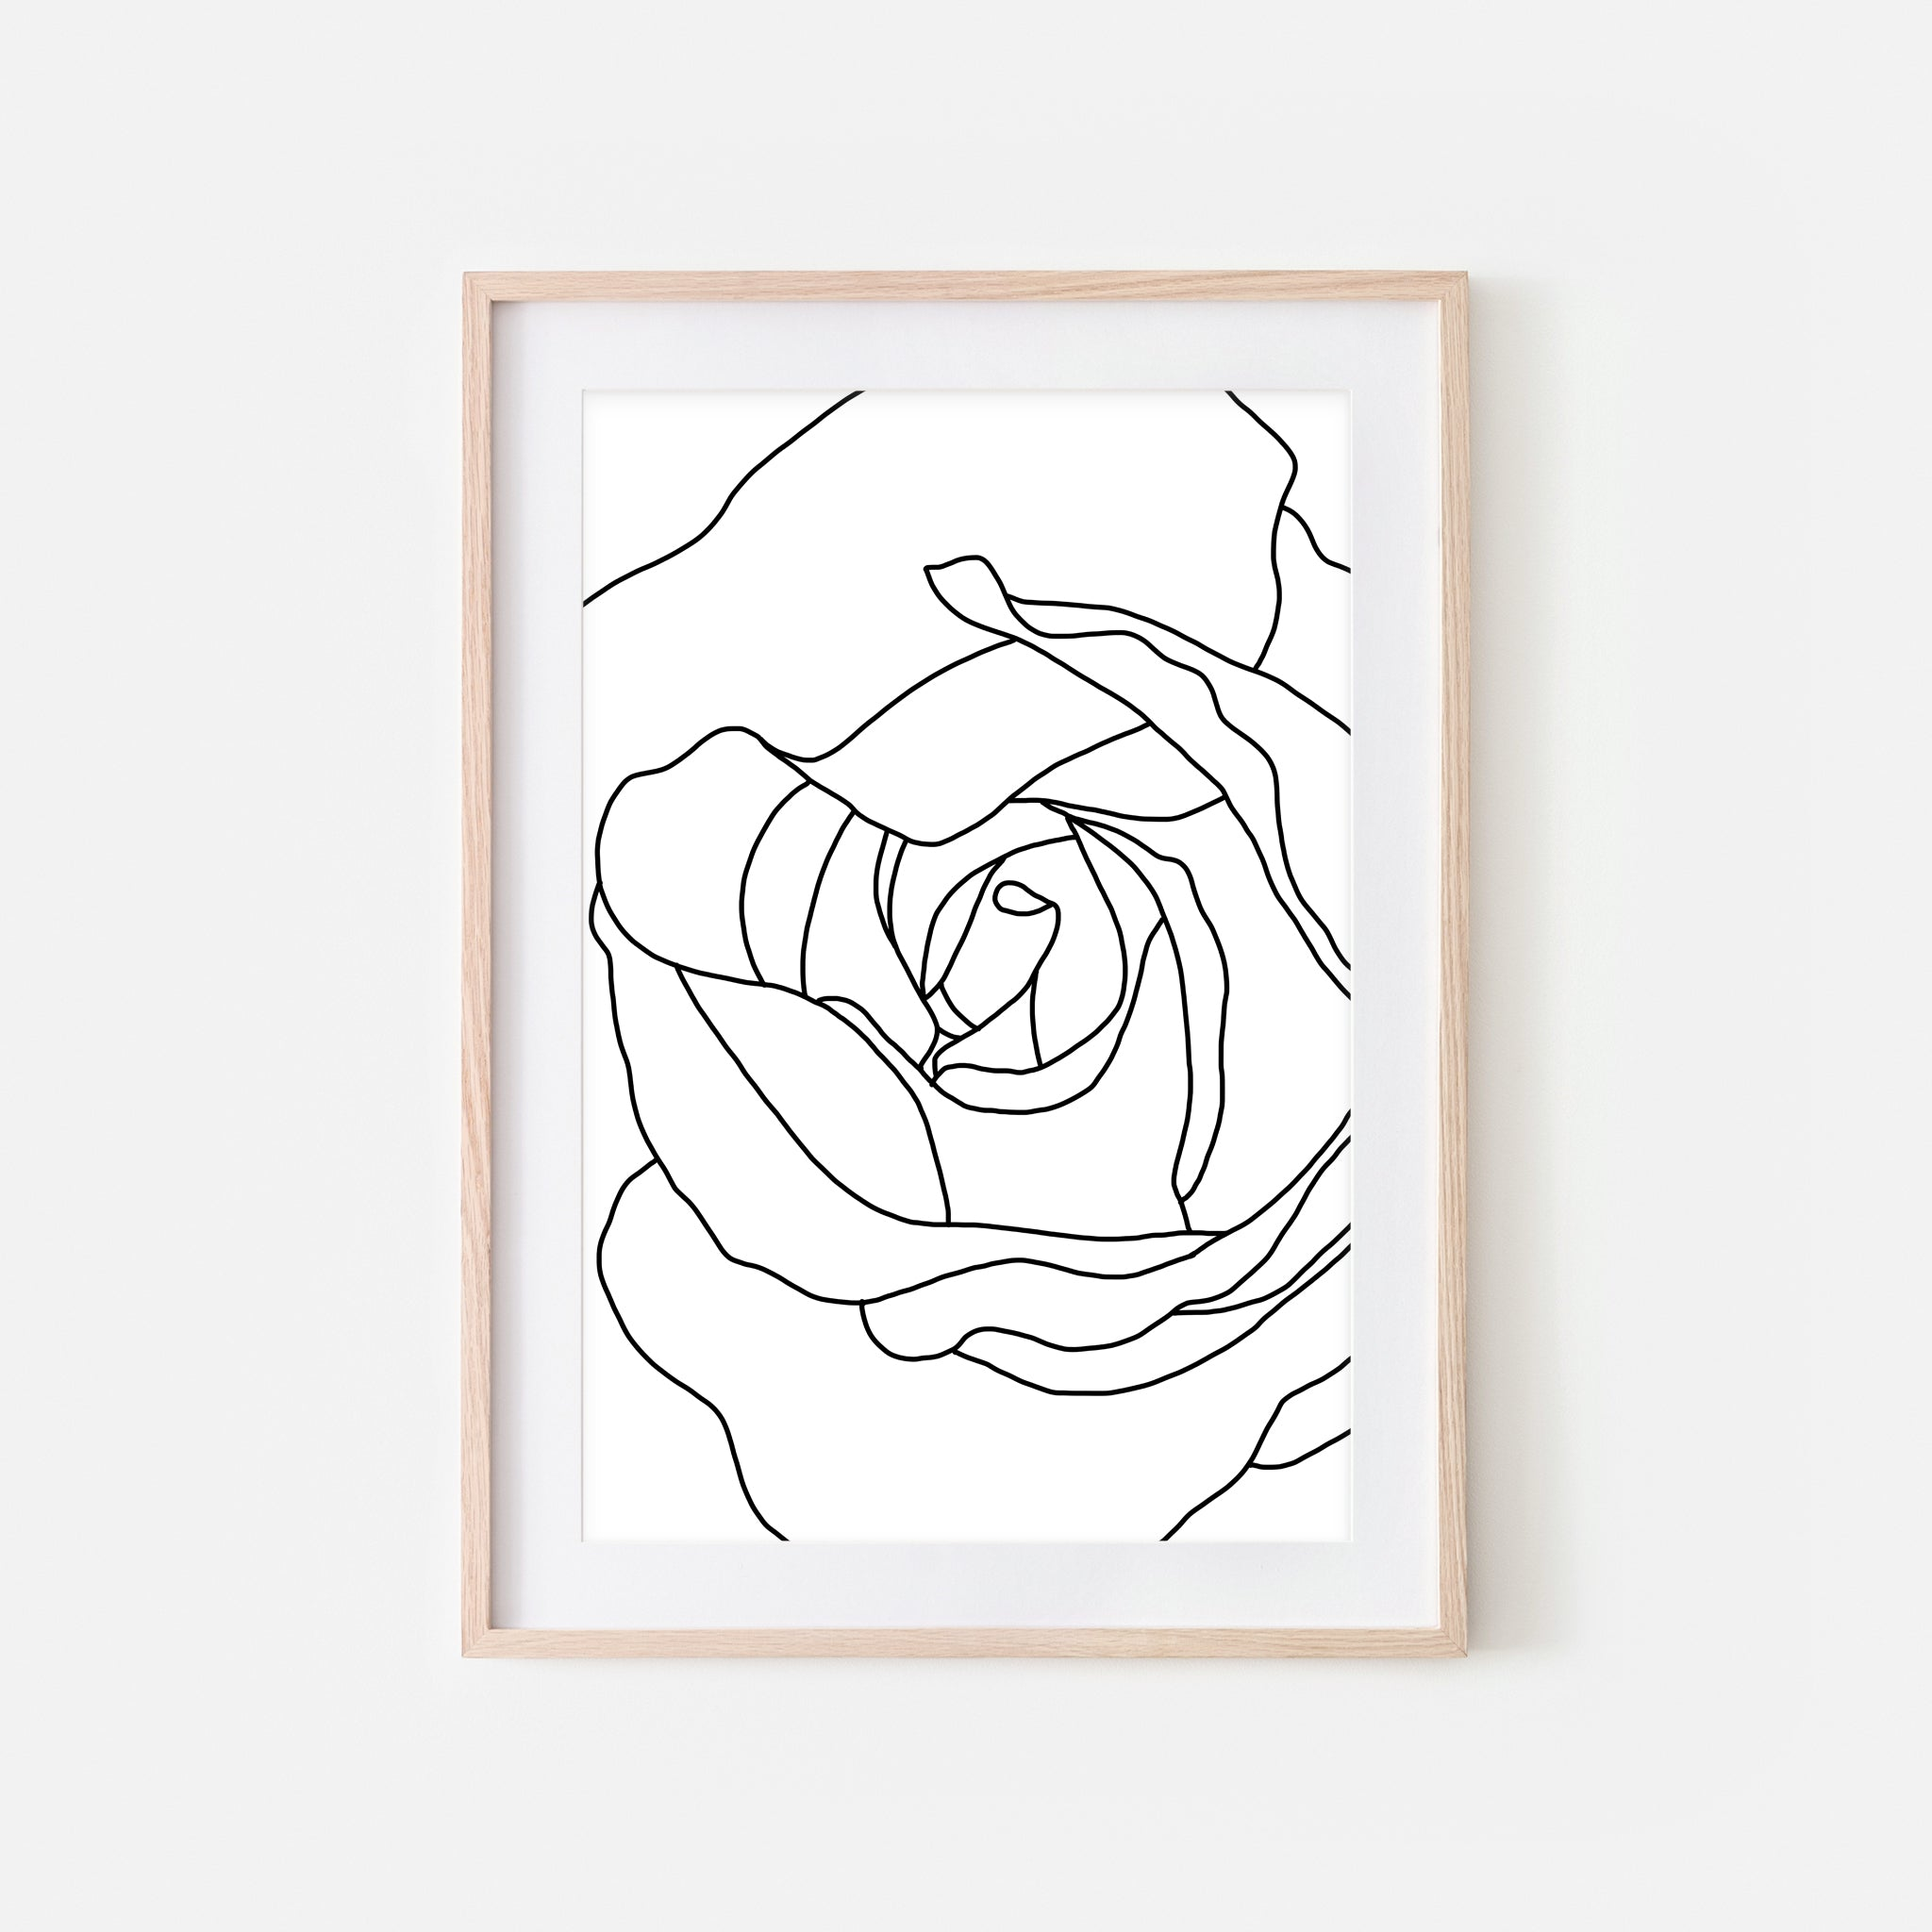 Floral No. 1 Wall Art - Minimalist Rose Flower Line Drawing - Black and White Print, Poster or Printable Download